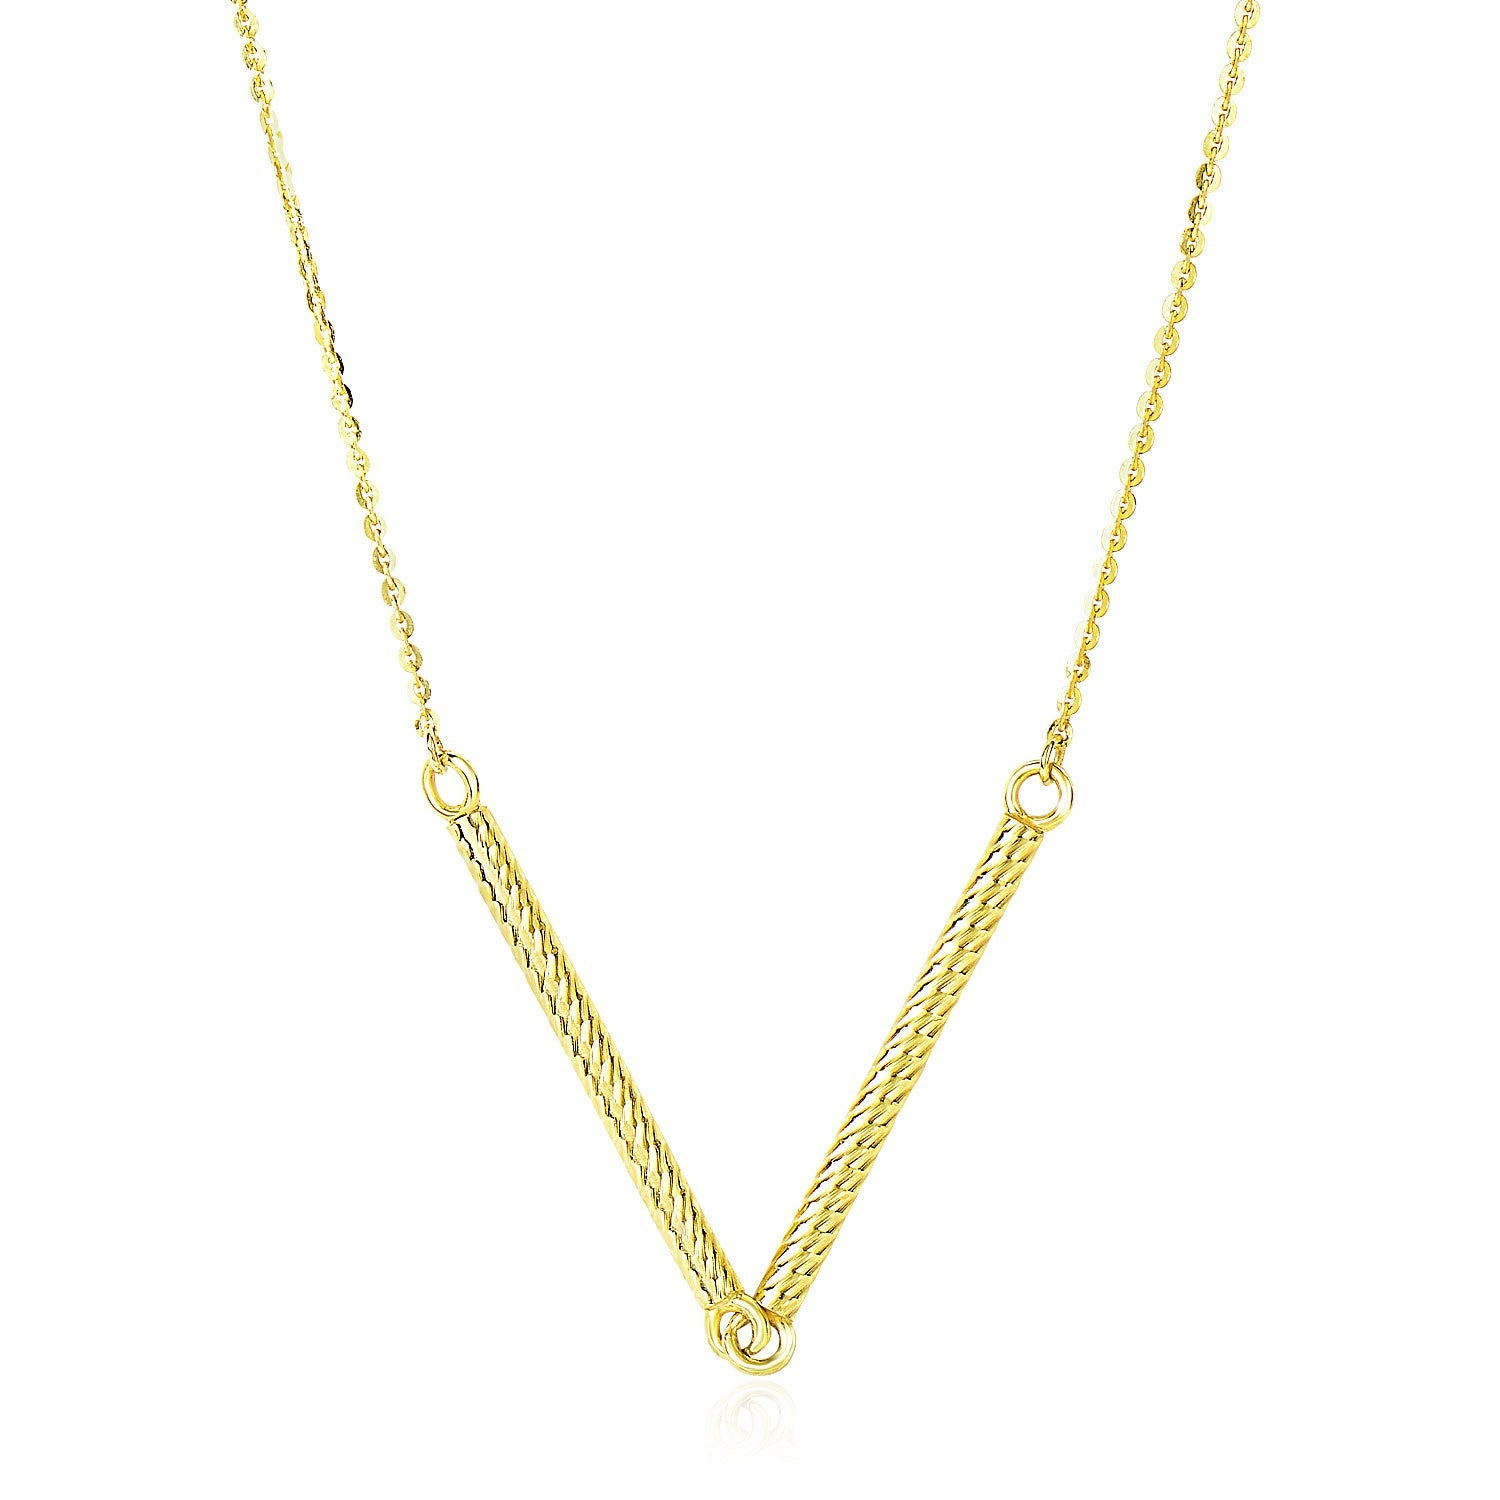 Unique Hollywood Style 14K Yellow Gold Chain Necklace with Two Connected Thin Bar Pendant